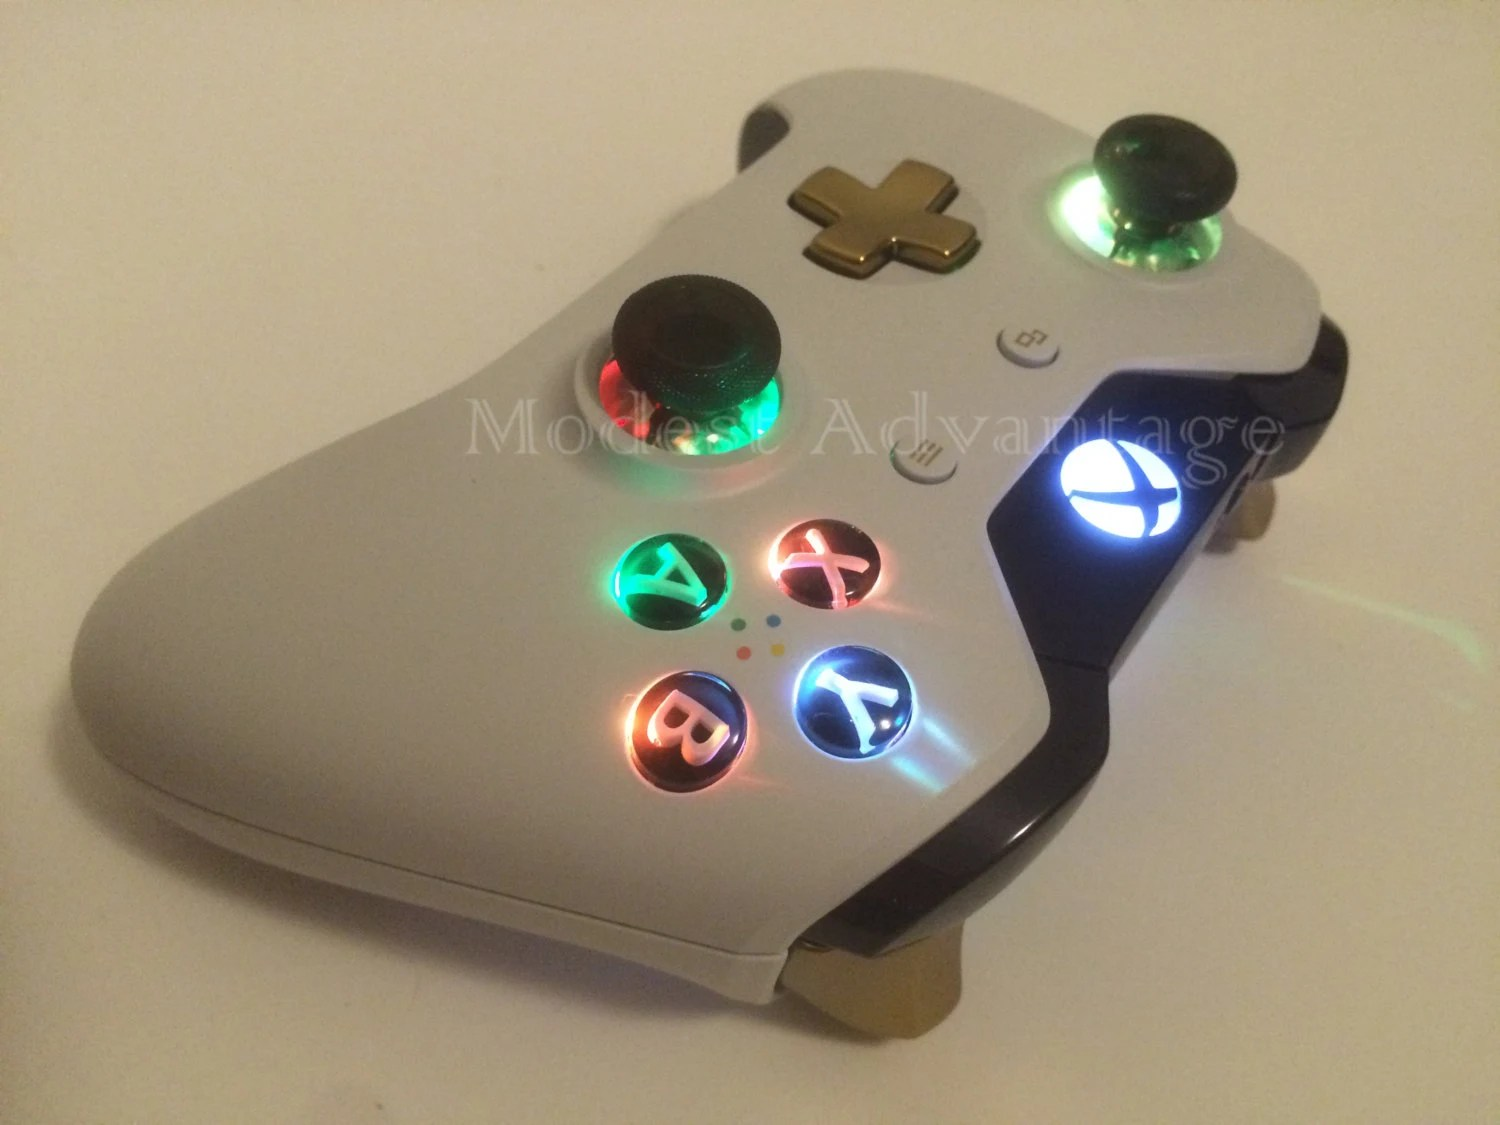 Xbox One Limited Edition Lunar Controller LED Mod